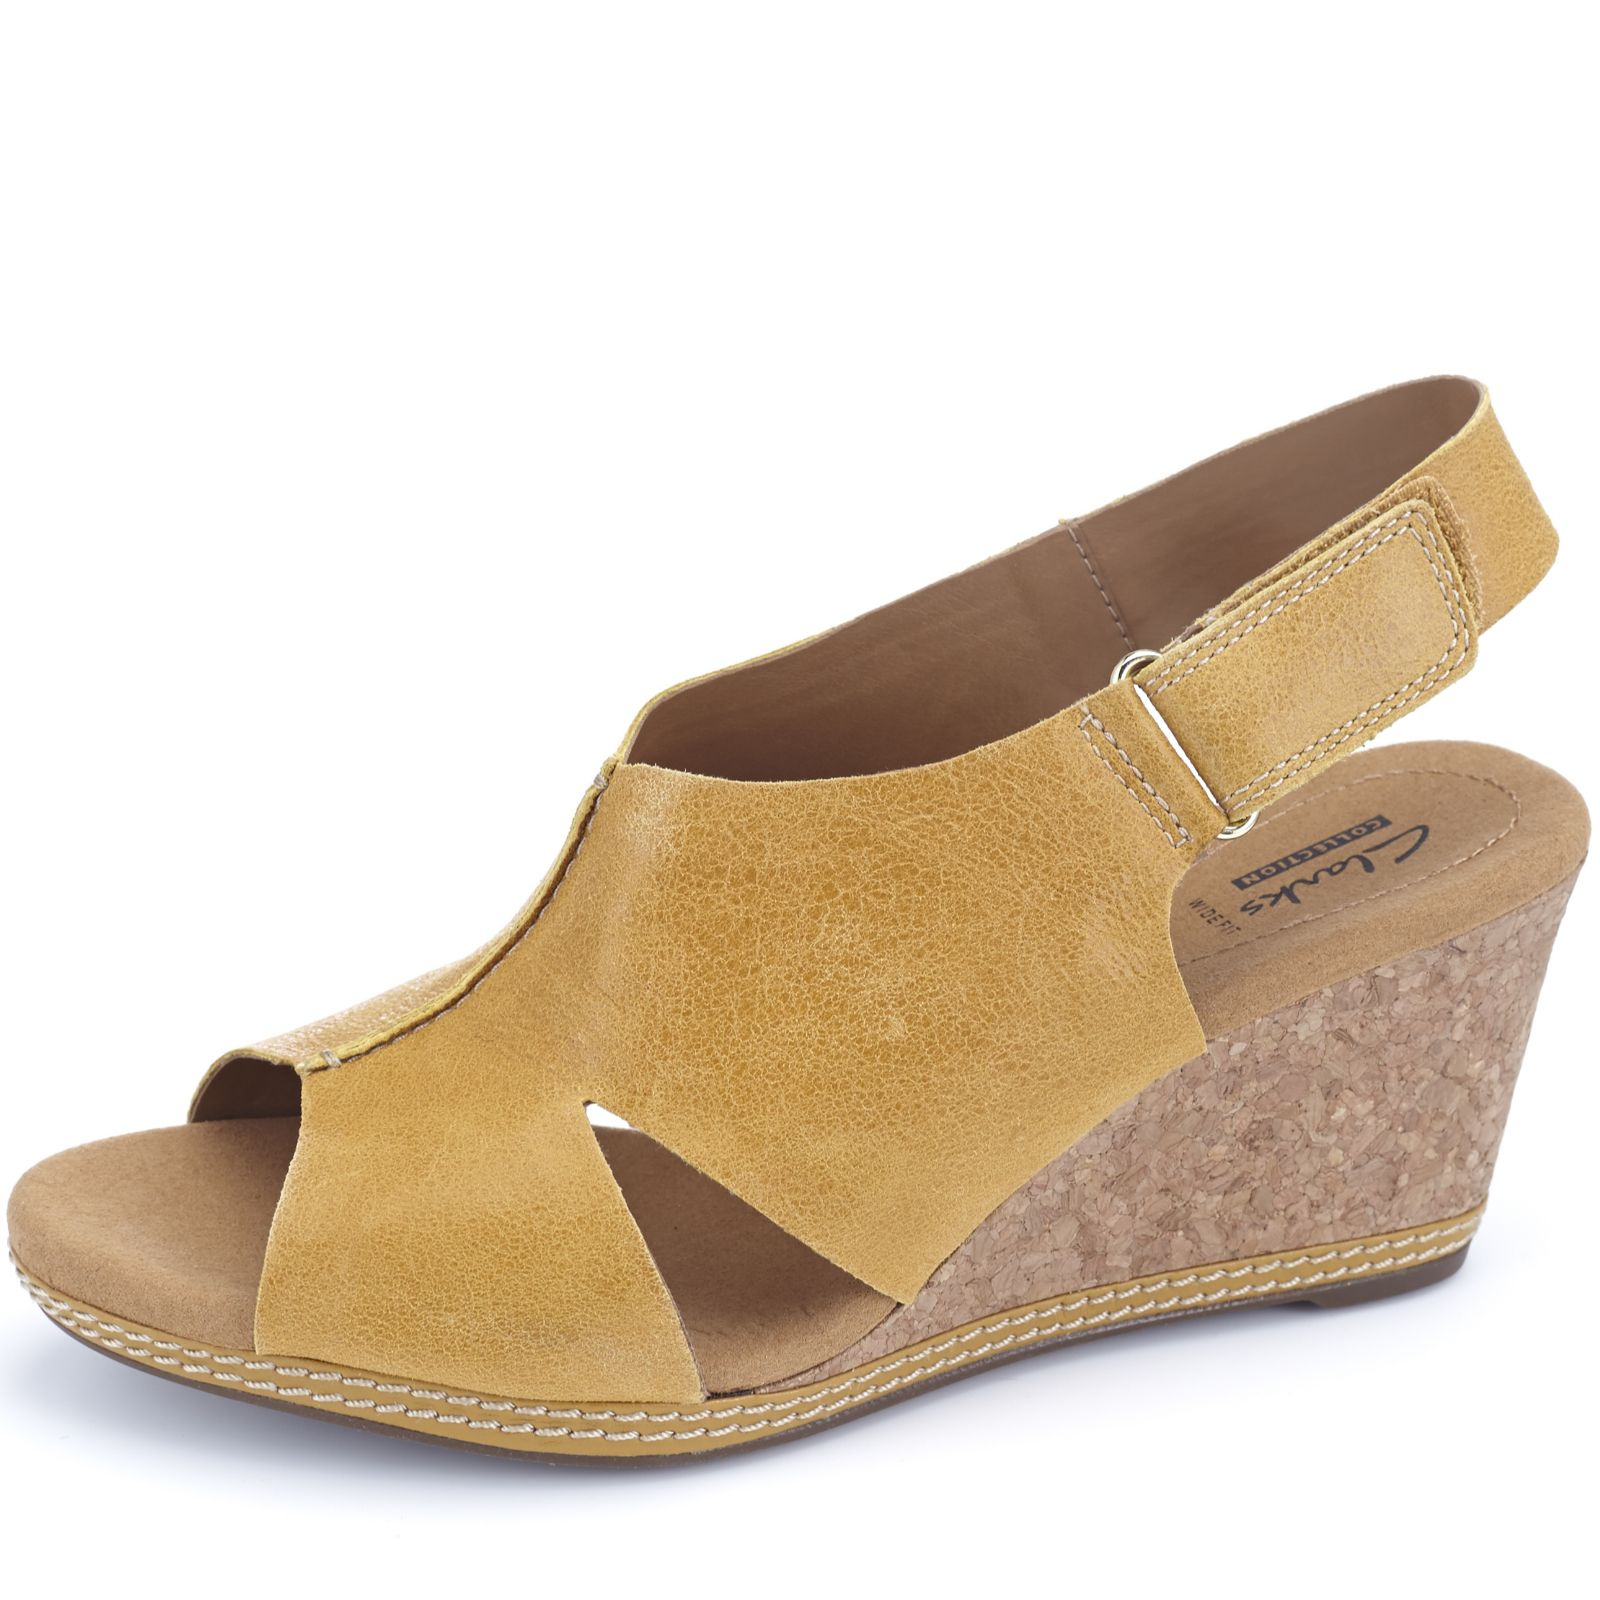 7081ceb726774f Clarks Helio Float Leather Wedge Sling Back Sandal Wide Fit - Page 1 - QVC  UK